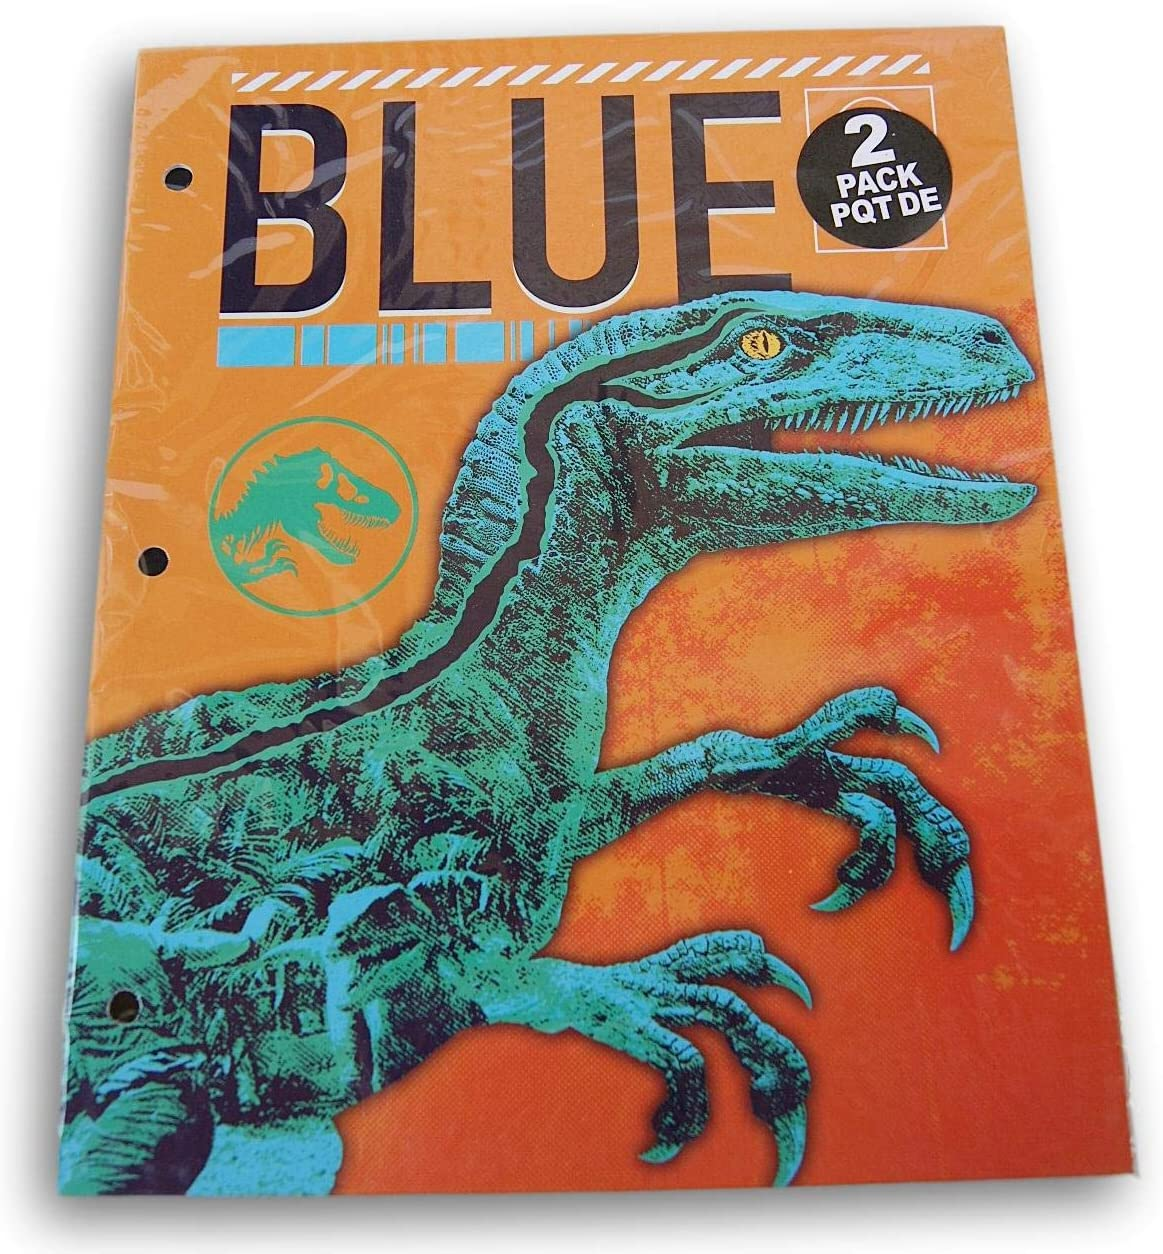 Jurassic World Blue & T-Rex Folders Bundle - Set of Two 3-Hole 2-Pocket Portfolio Folders